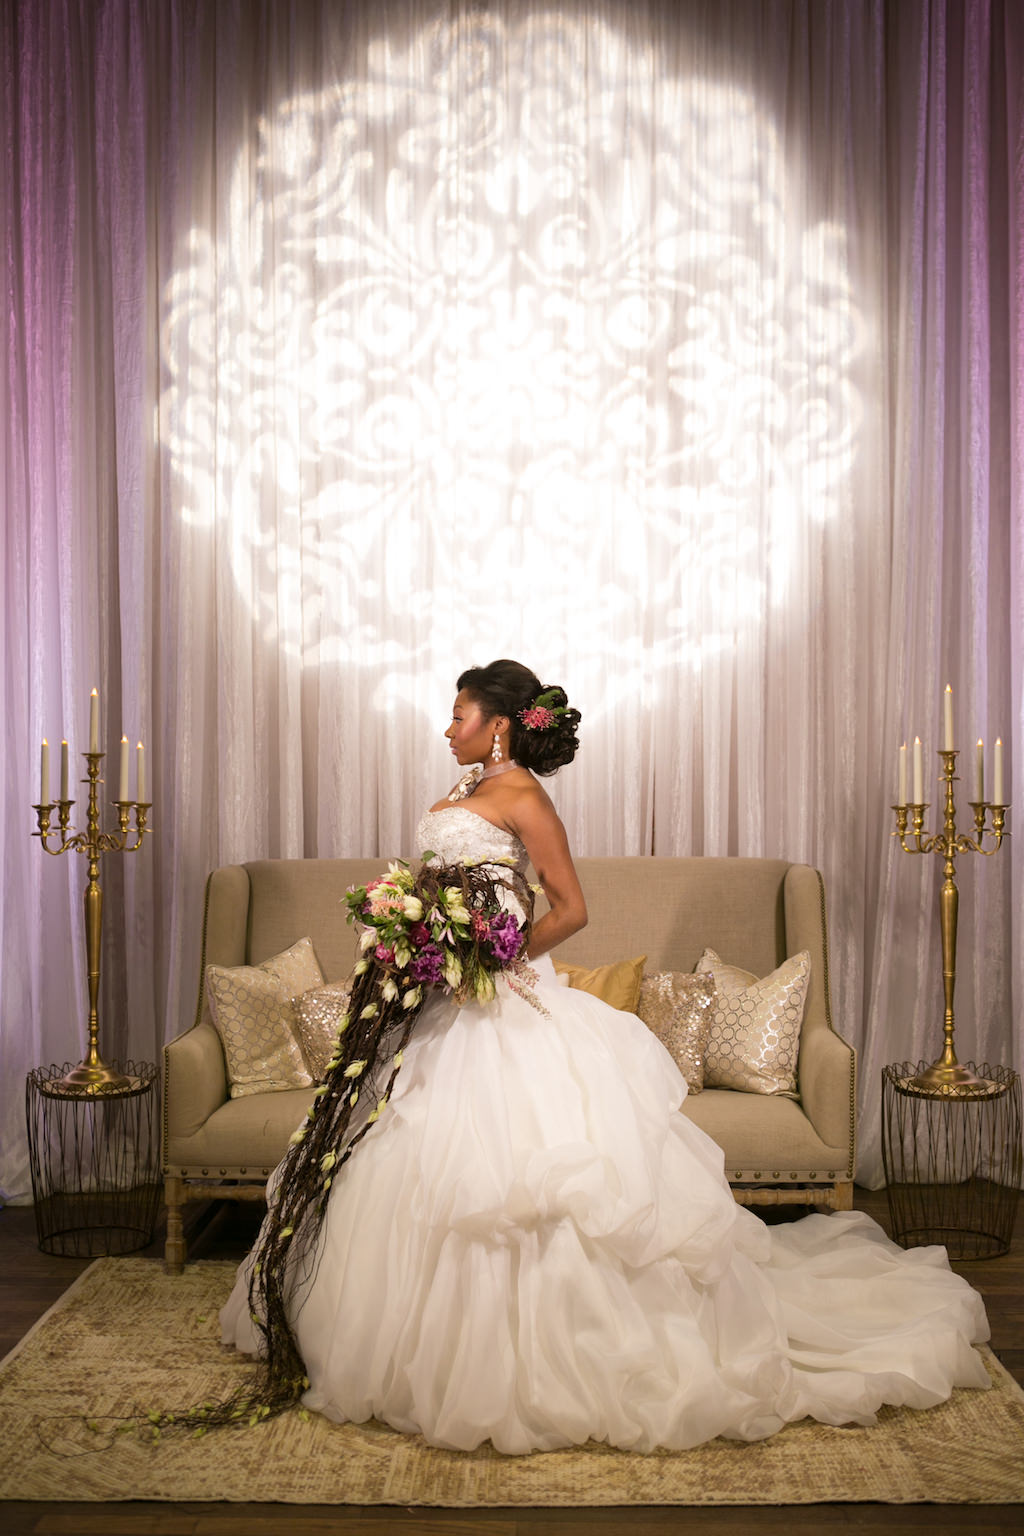 French Inspired Marie Antoinette Bridal Portrait with Cascading Natural Tropical Wedding Bouquet | Ballgown Wedding Dress from Tampa Bay Bridal Shop Truly Forever Bridal | Tampa Bay Wedding Photographer Carrie Wildes Photography